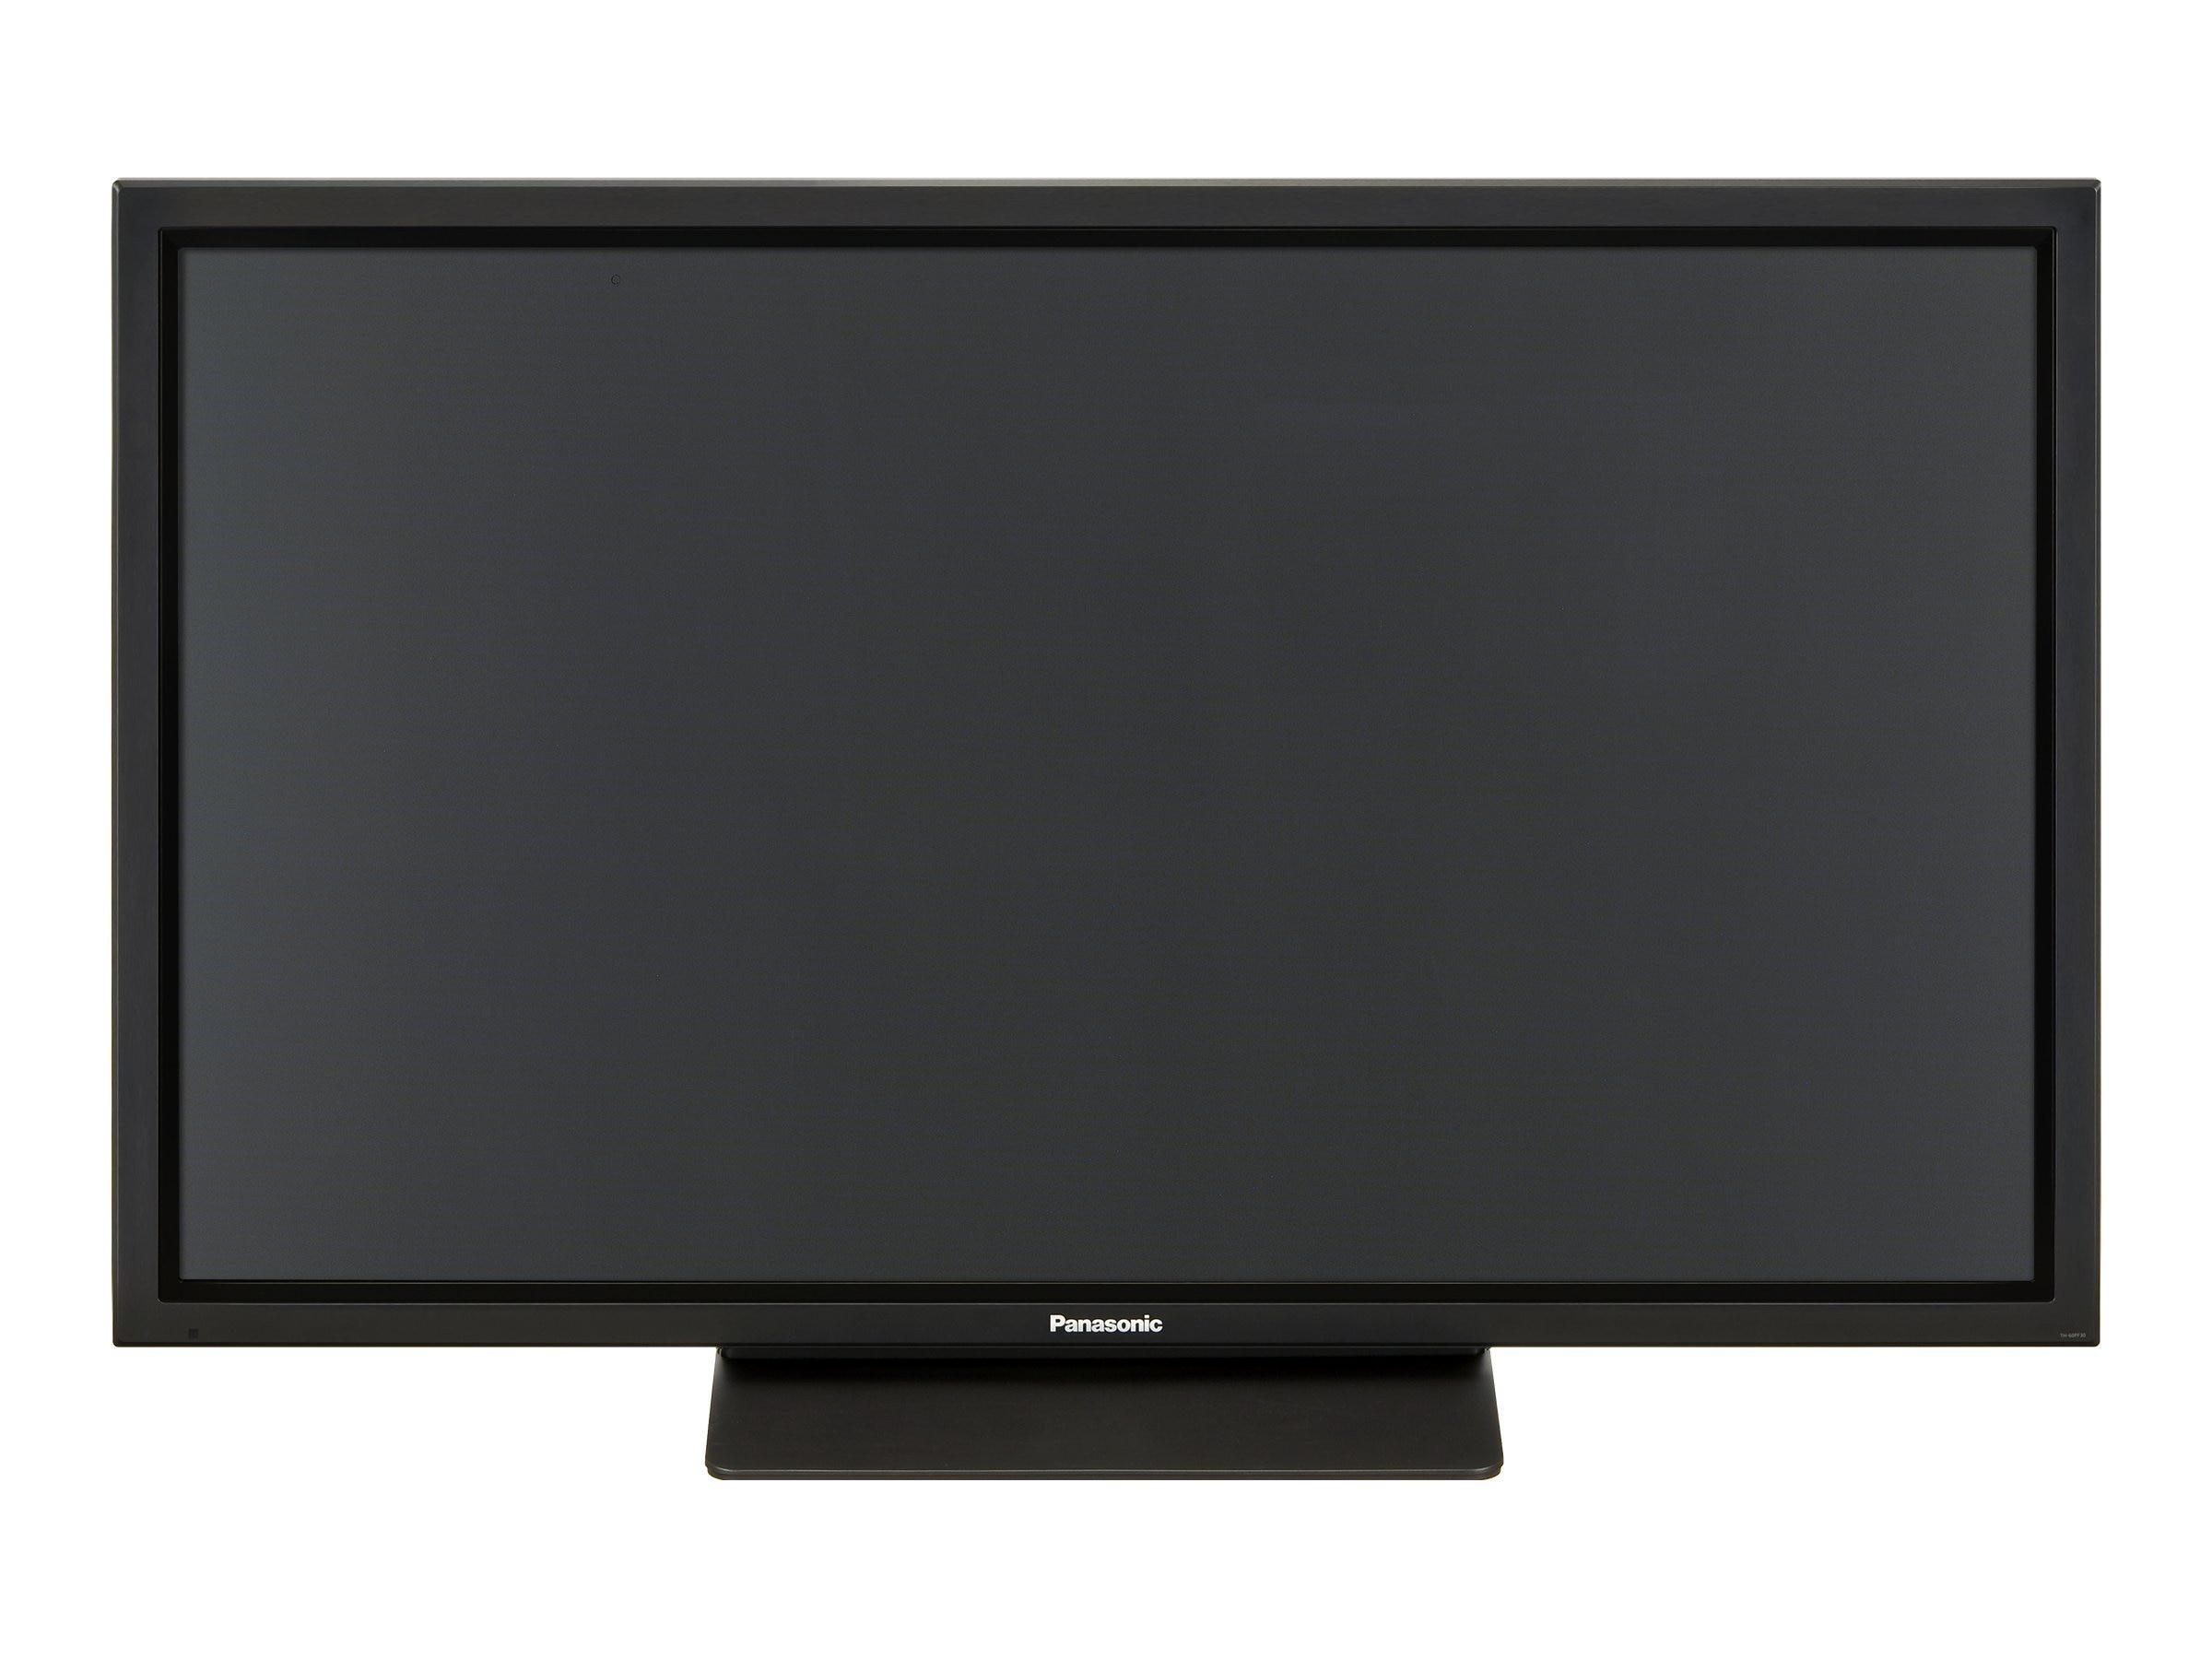 Panasonic 60 PF30U 3D-Ready Plasma Display, 1080p, Black, TH60PF30U, 13017354, Monitors - Large-Format Plasma